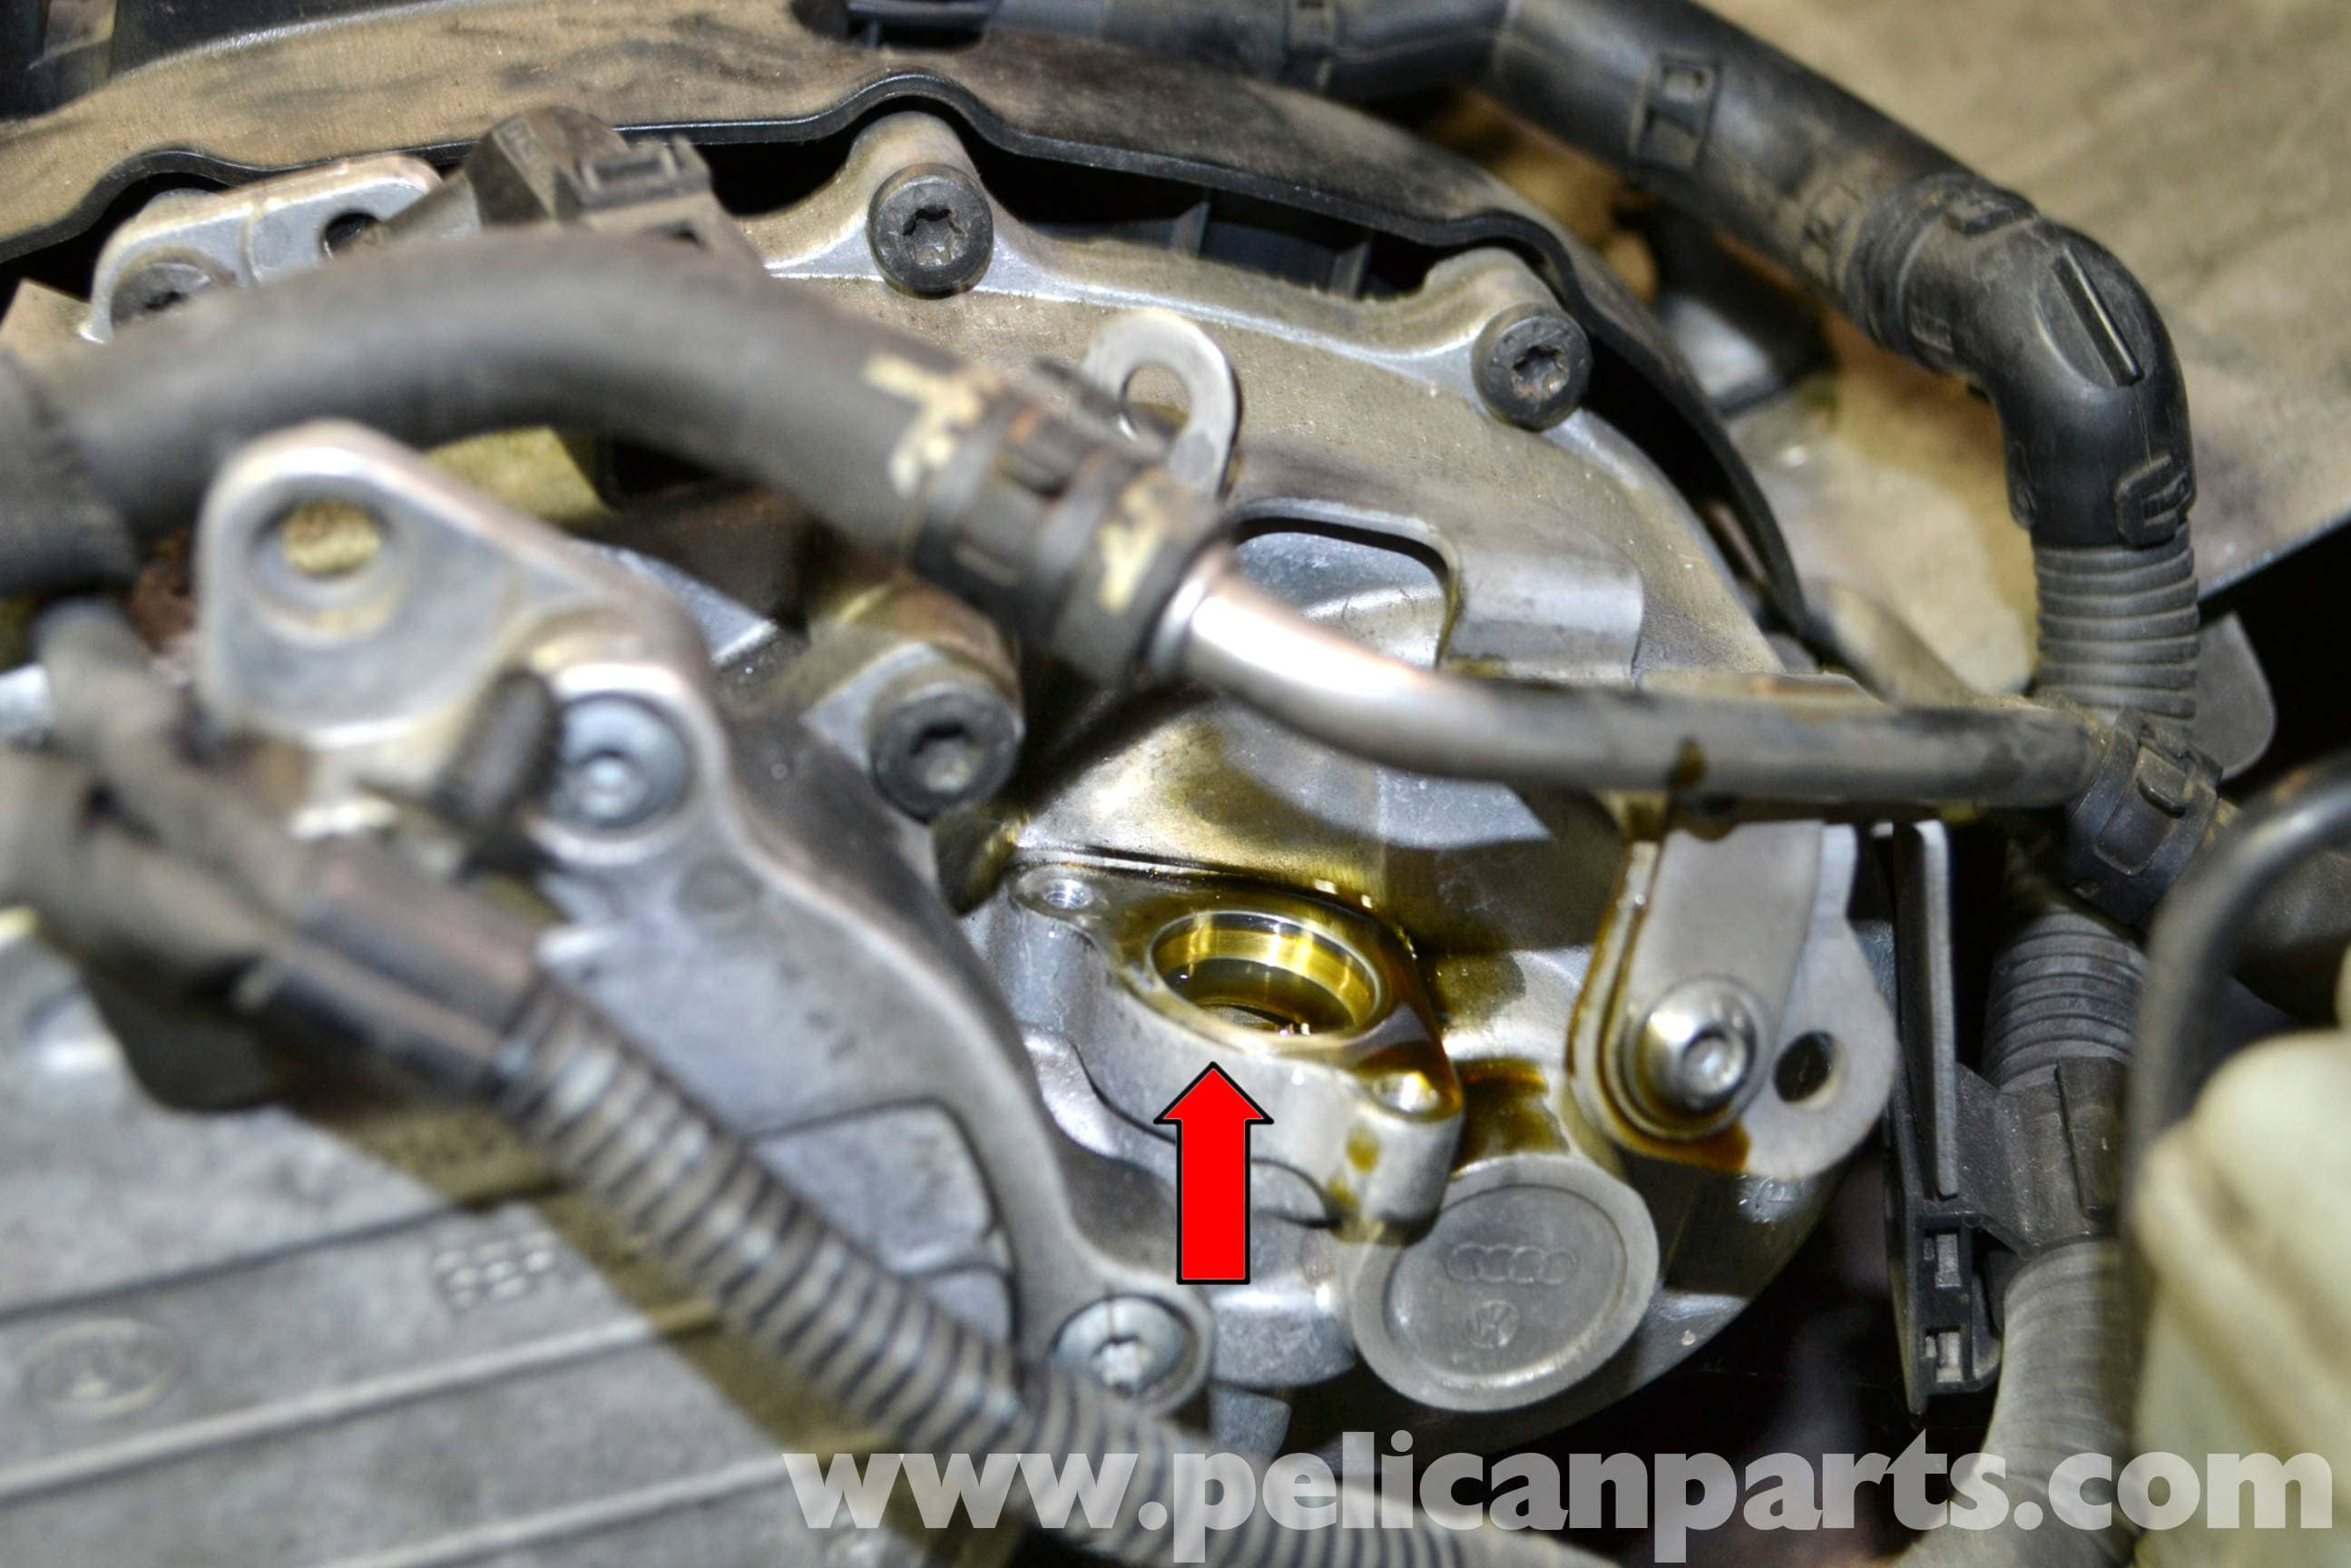 Volkswagen Golf GTI Mk V Camshaft Adjustment Valve ...